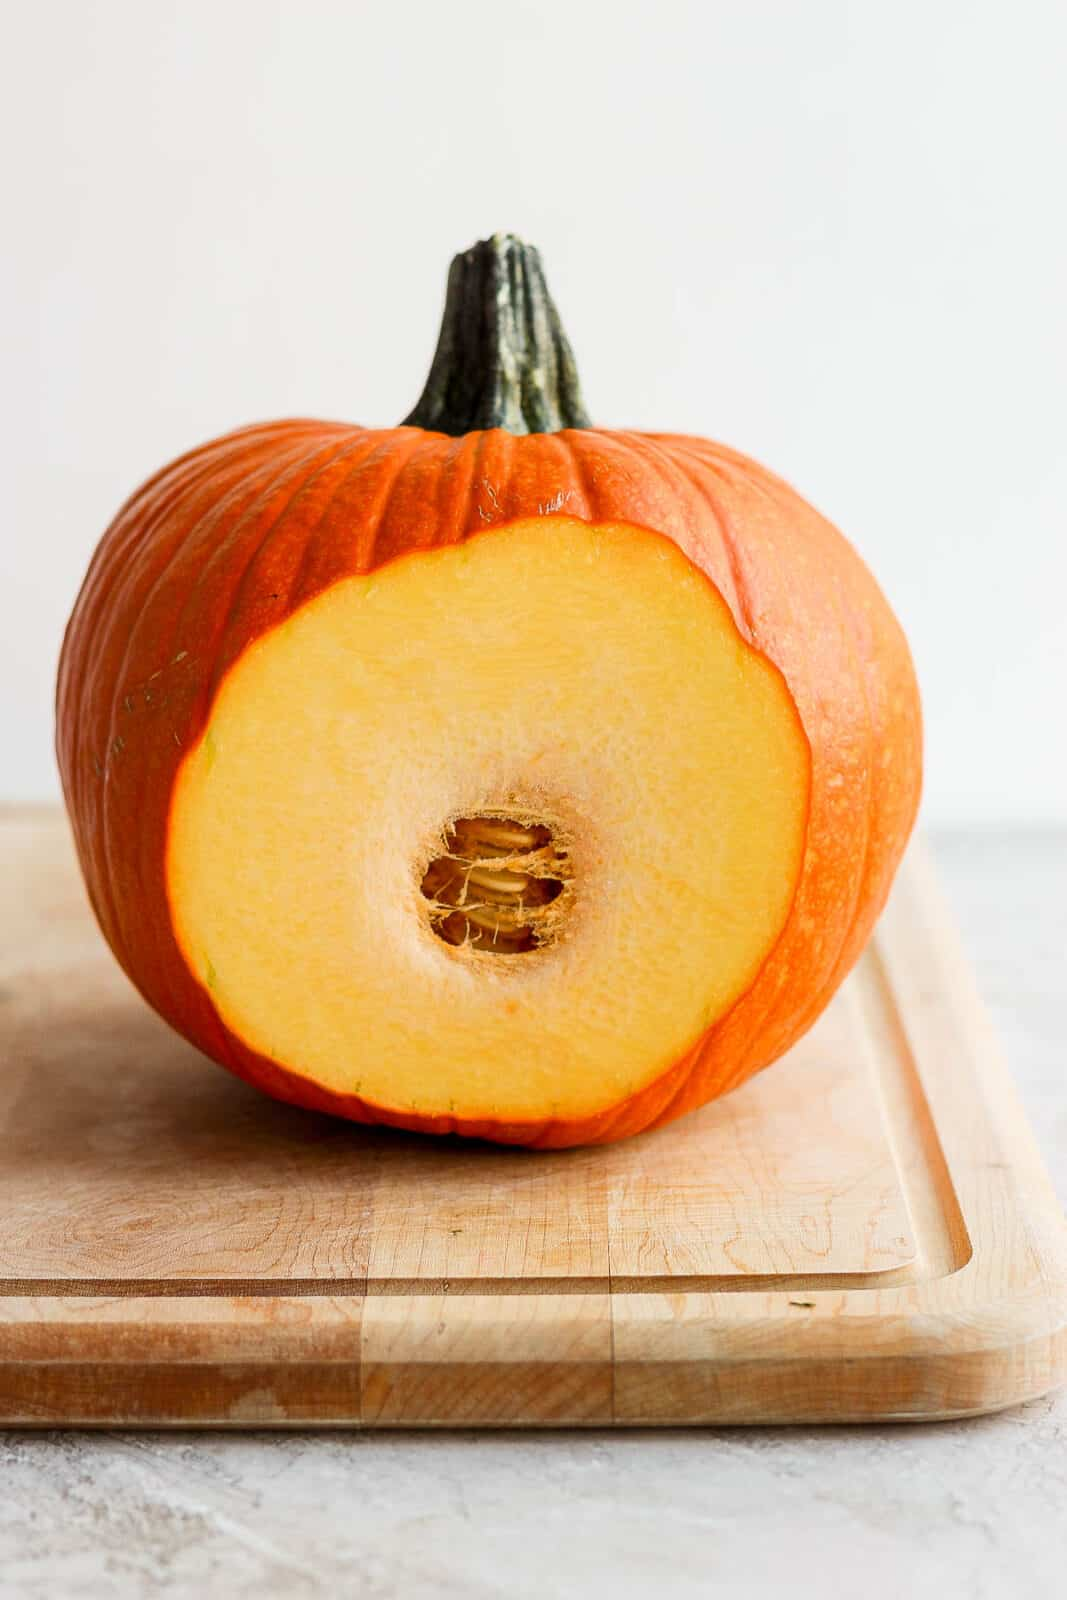 A pumpkin with a thin slice cut off the side.